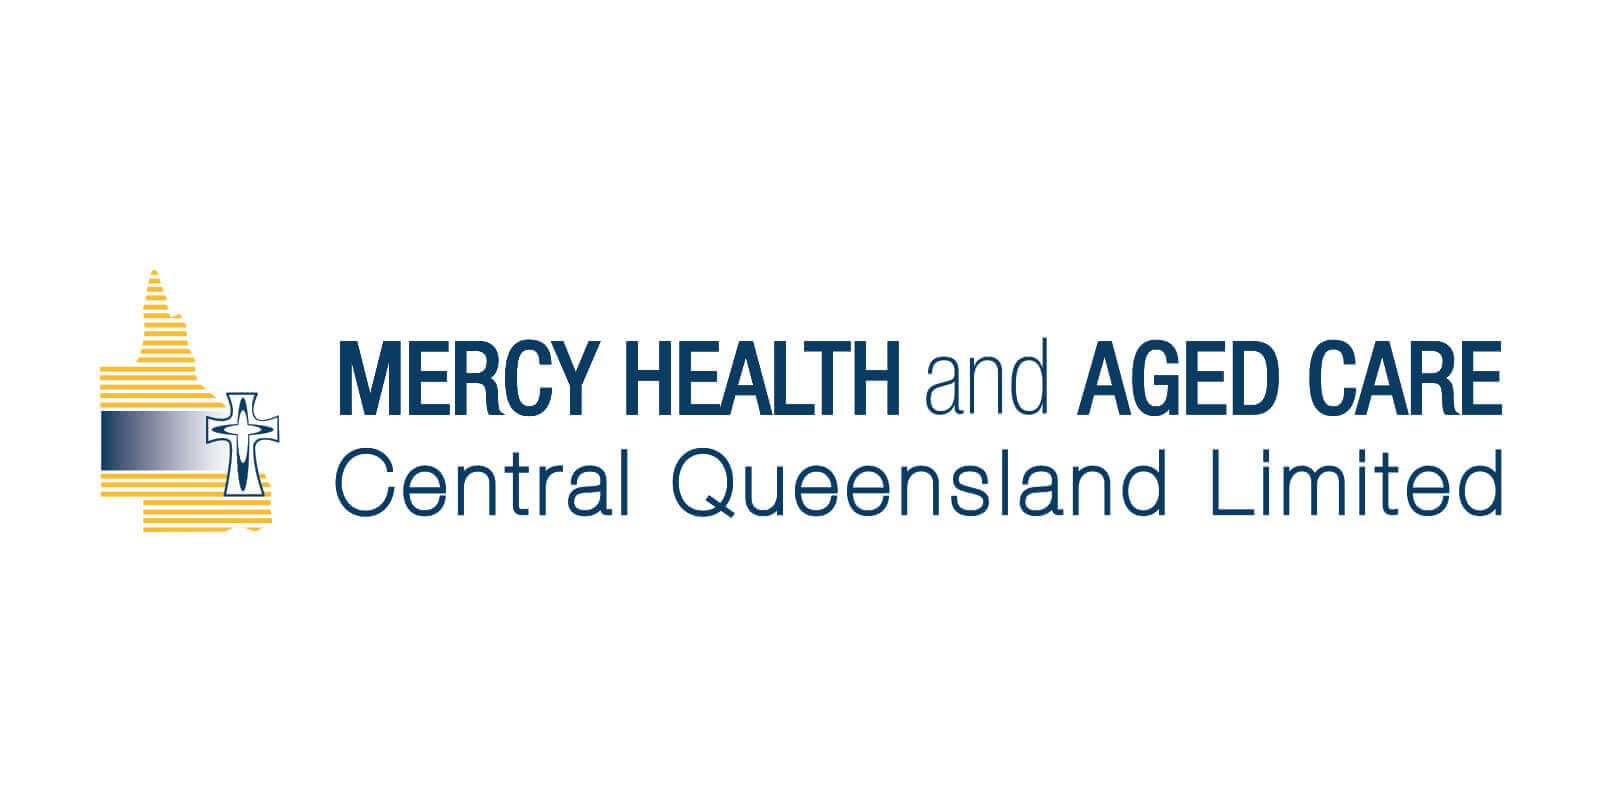 Mercy Health Central Queensland